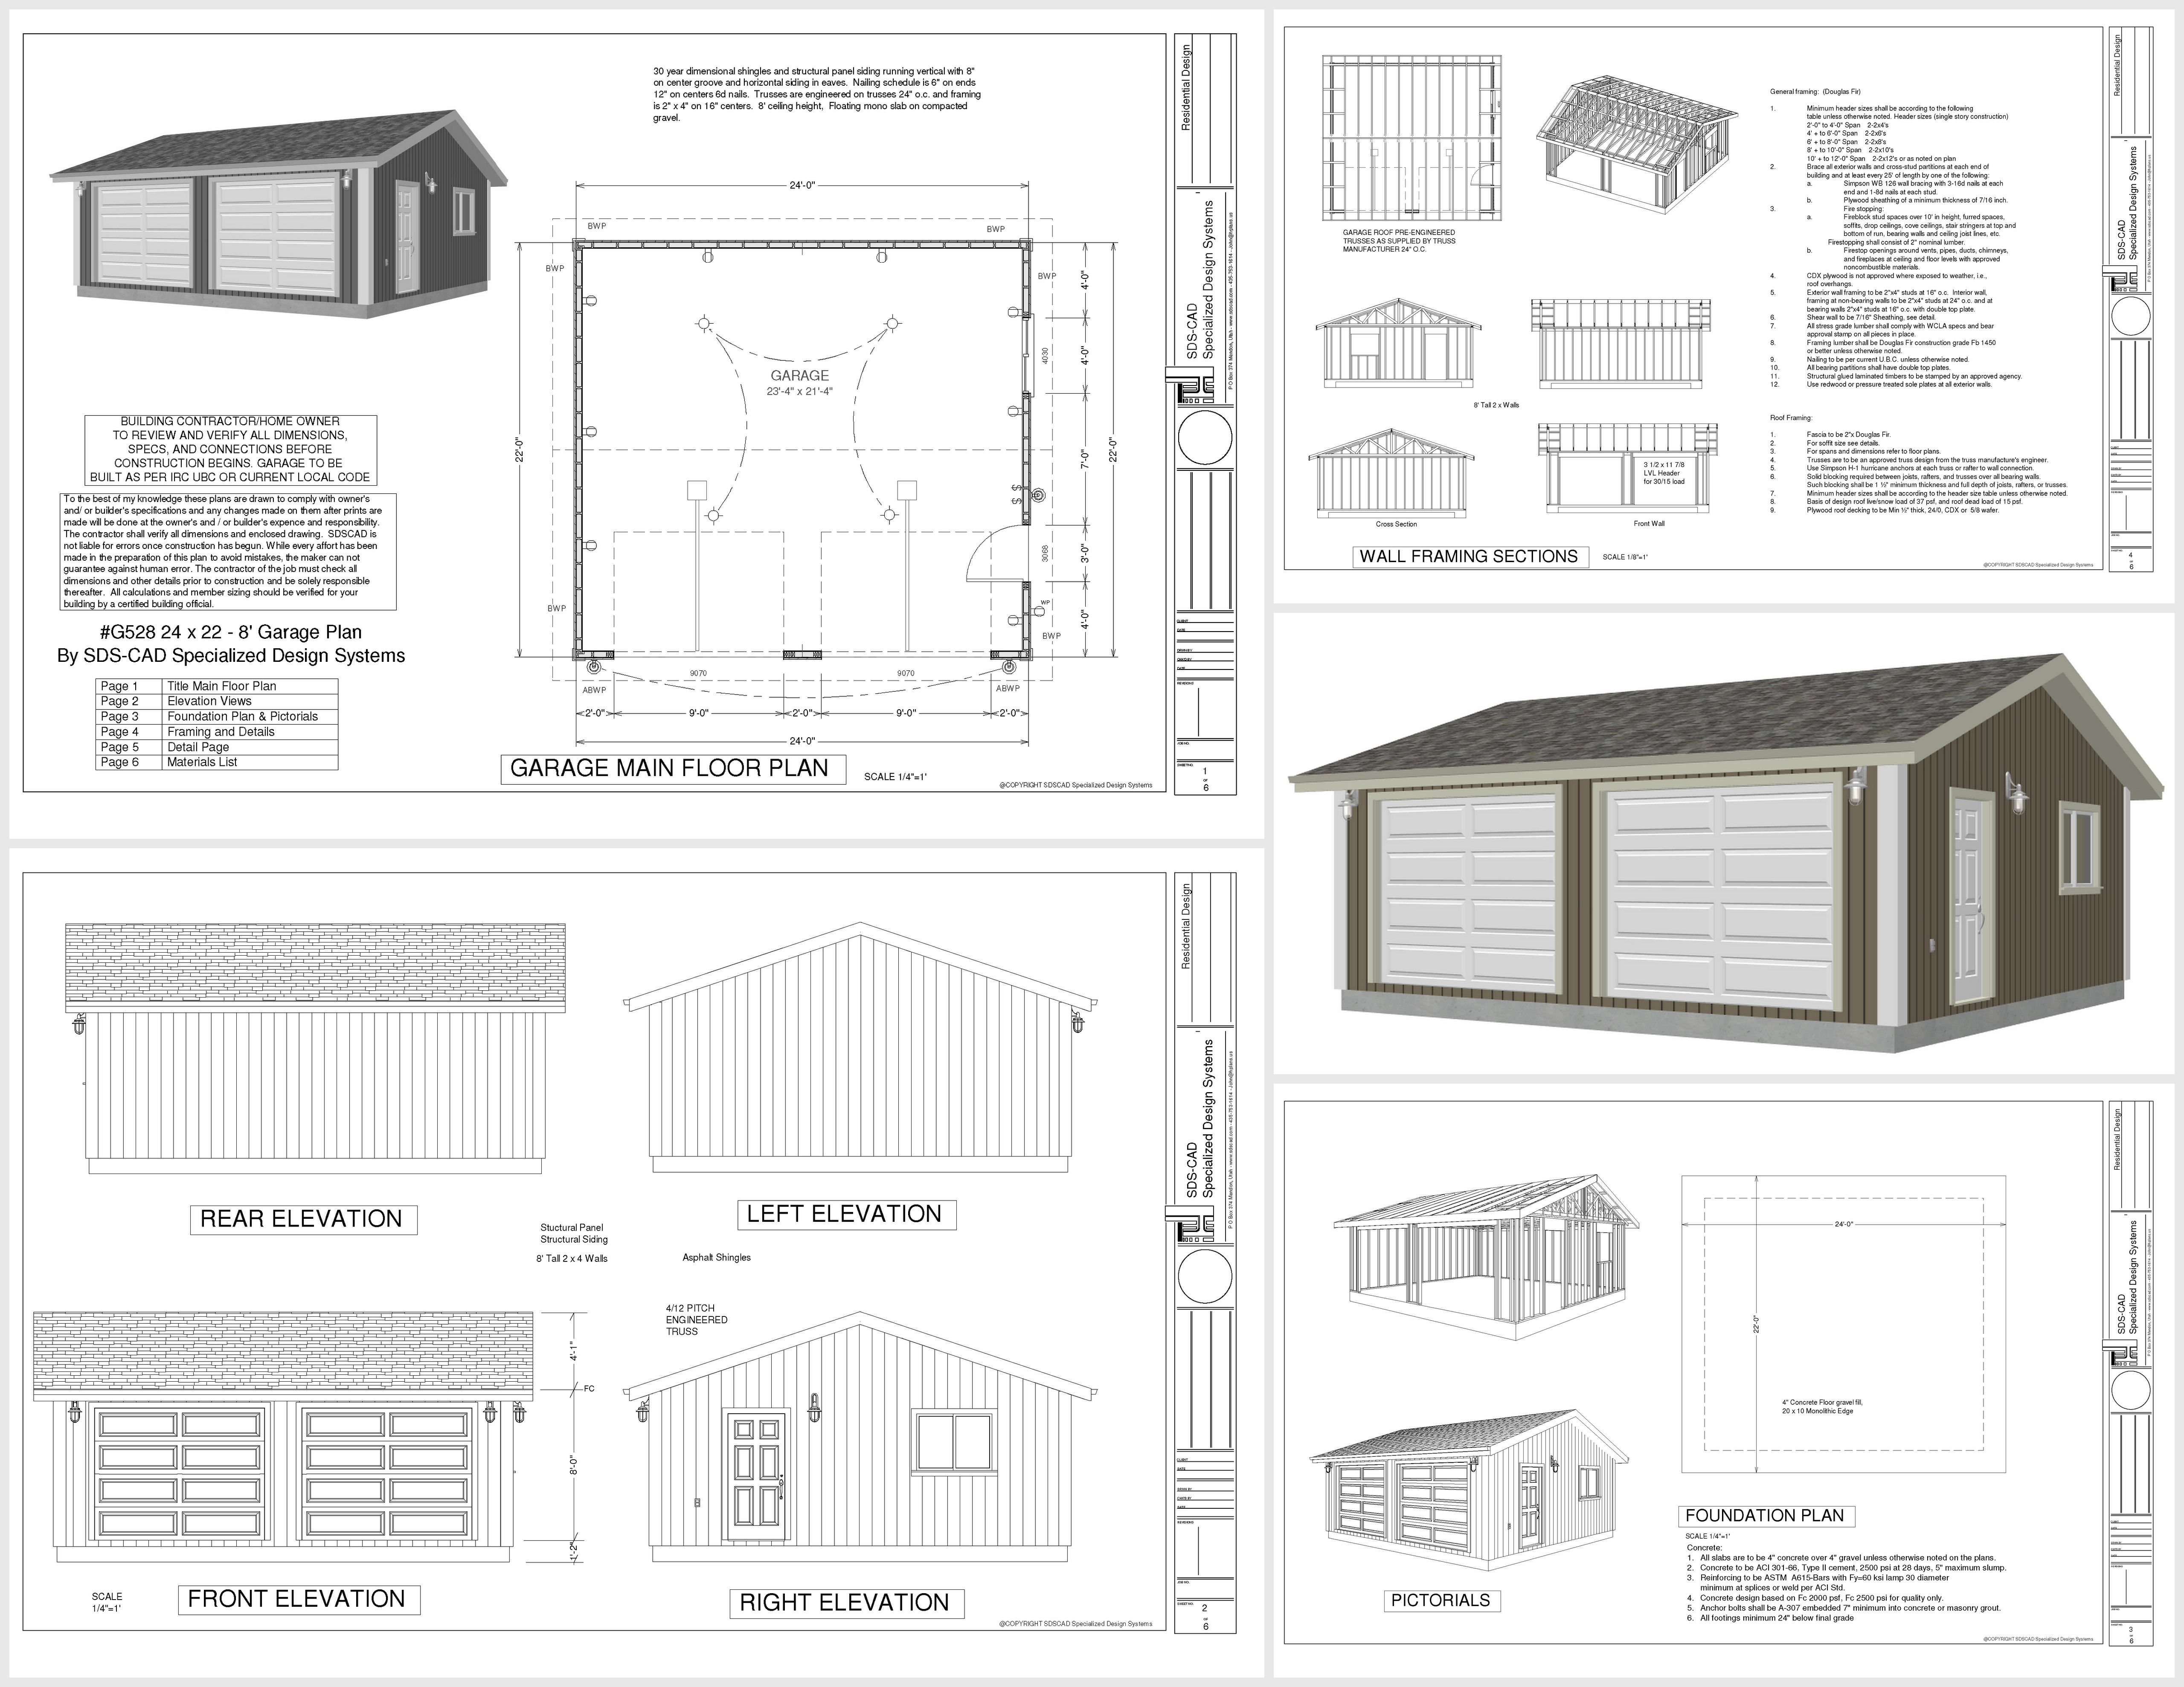 Free garage plans g528 24 x 22 x 8 garage plan pdf and dwg Free garage blueprints